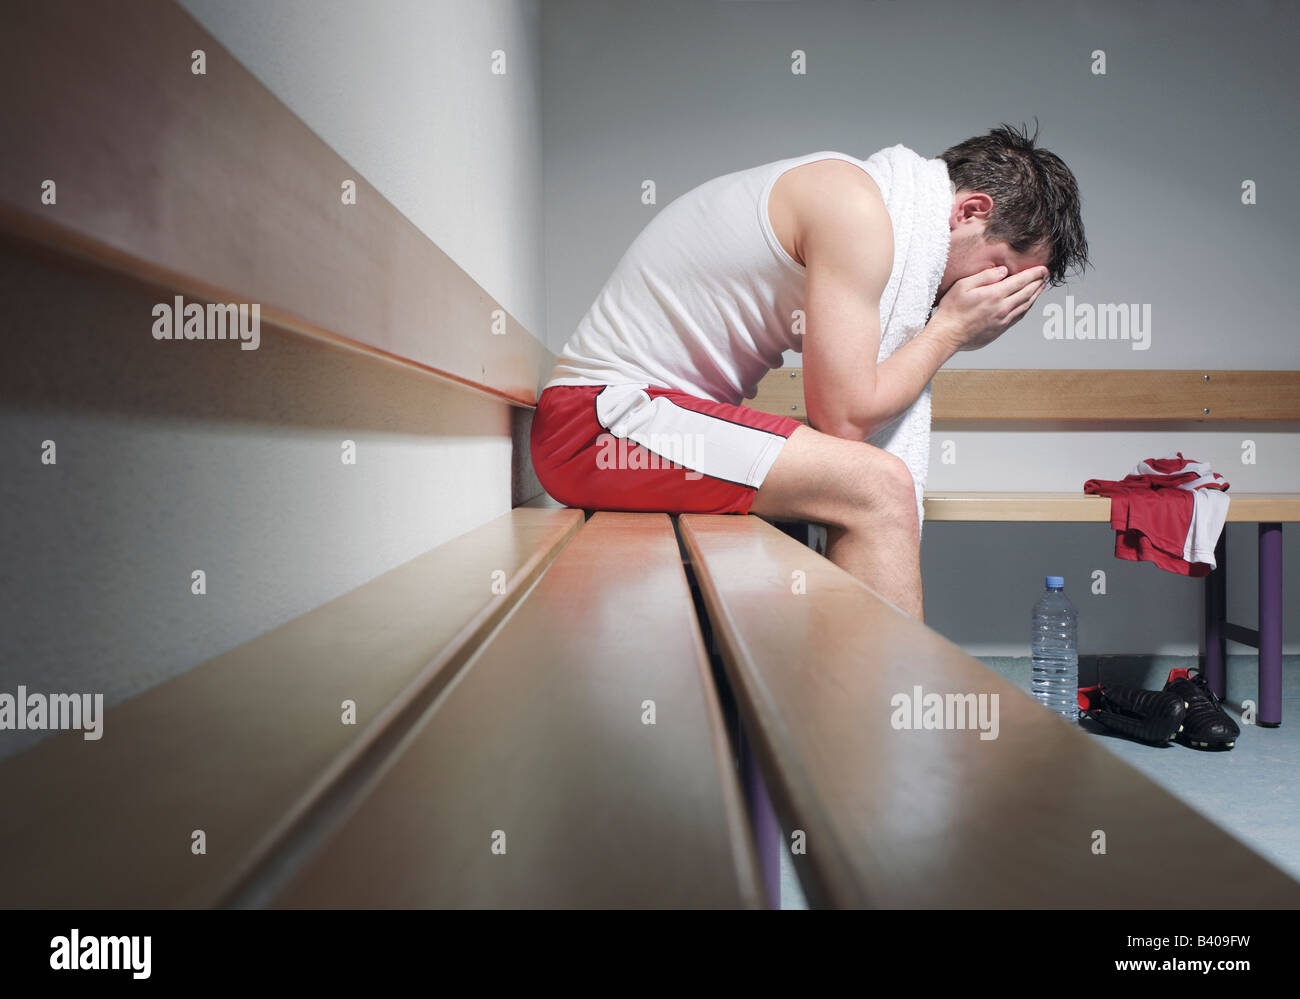 Exhausted soccer player sitting in changing room - Stock Image